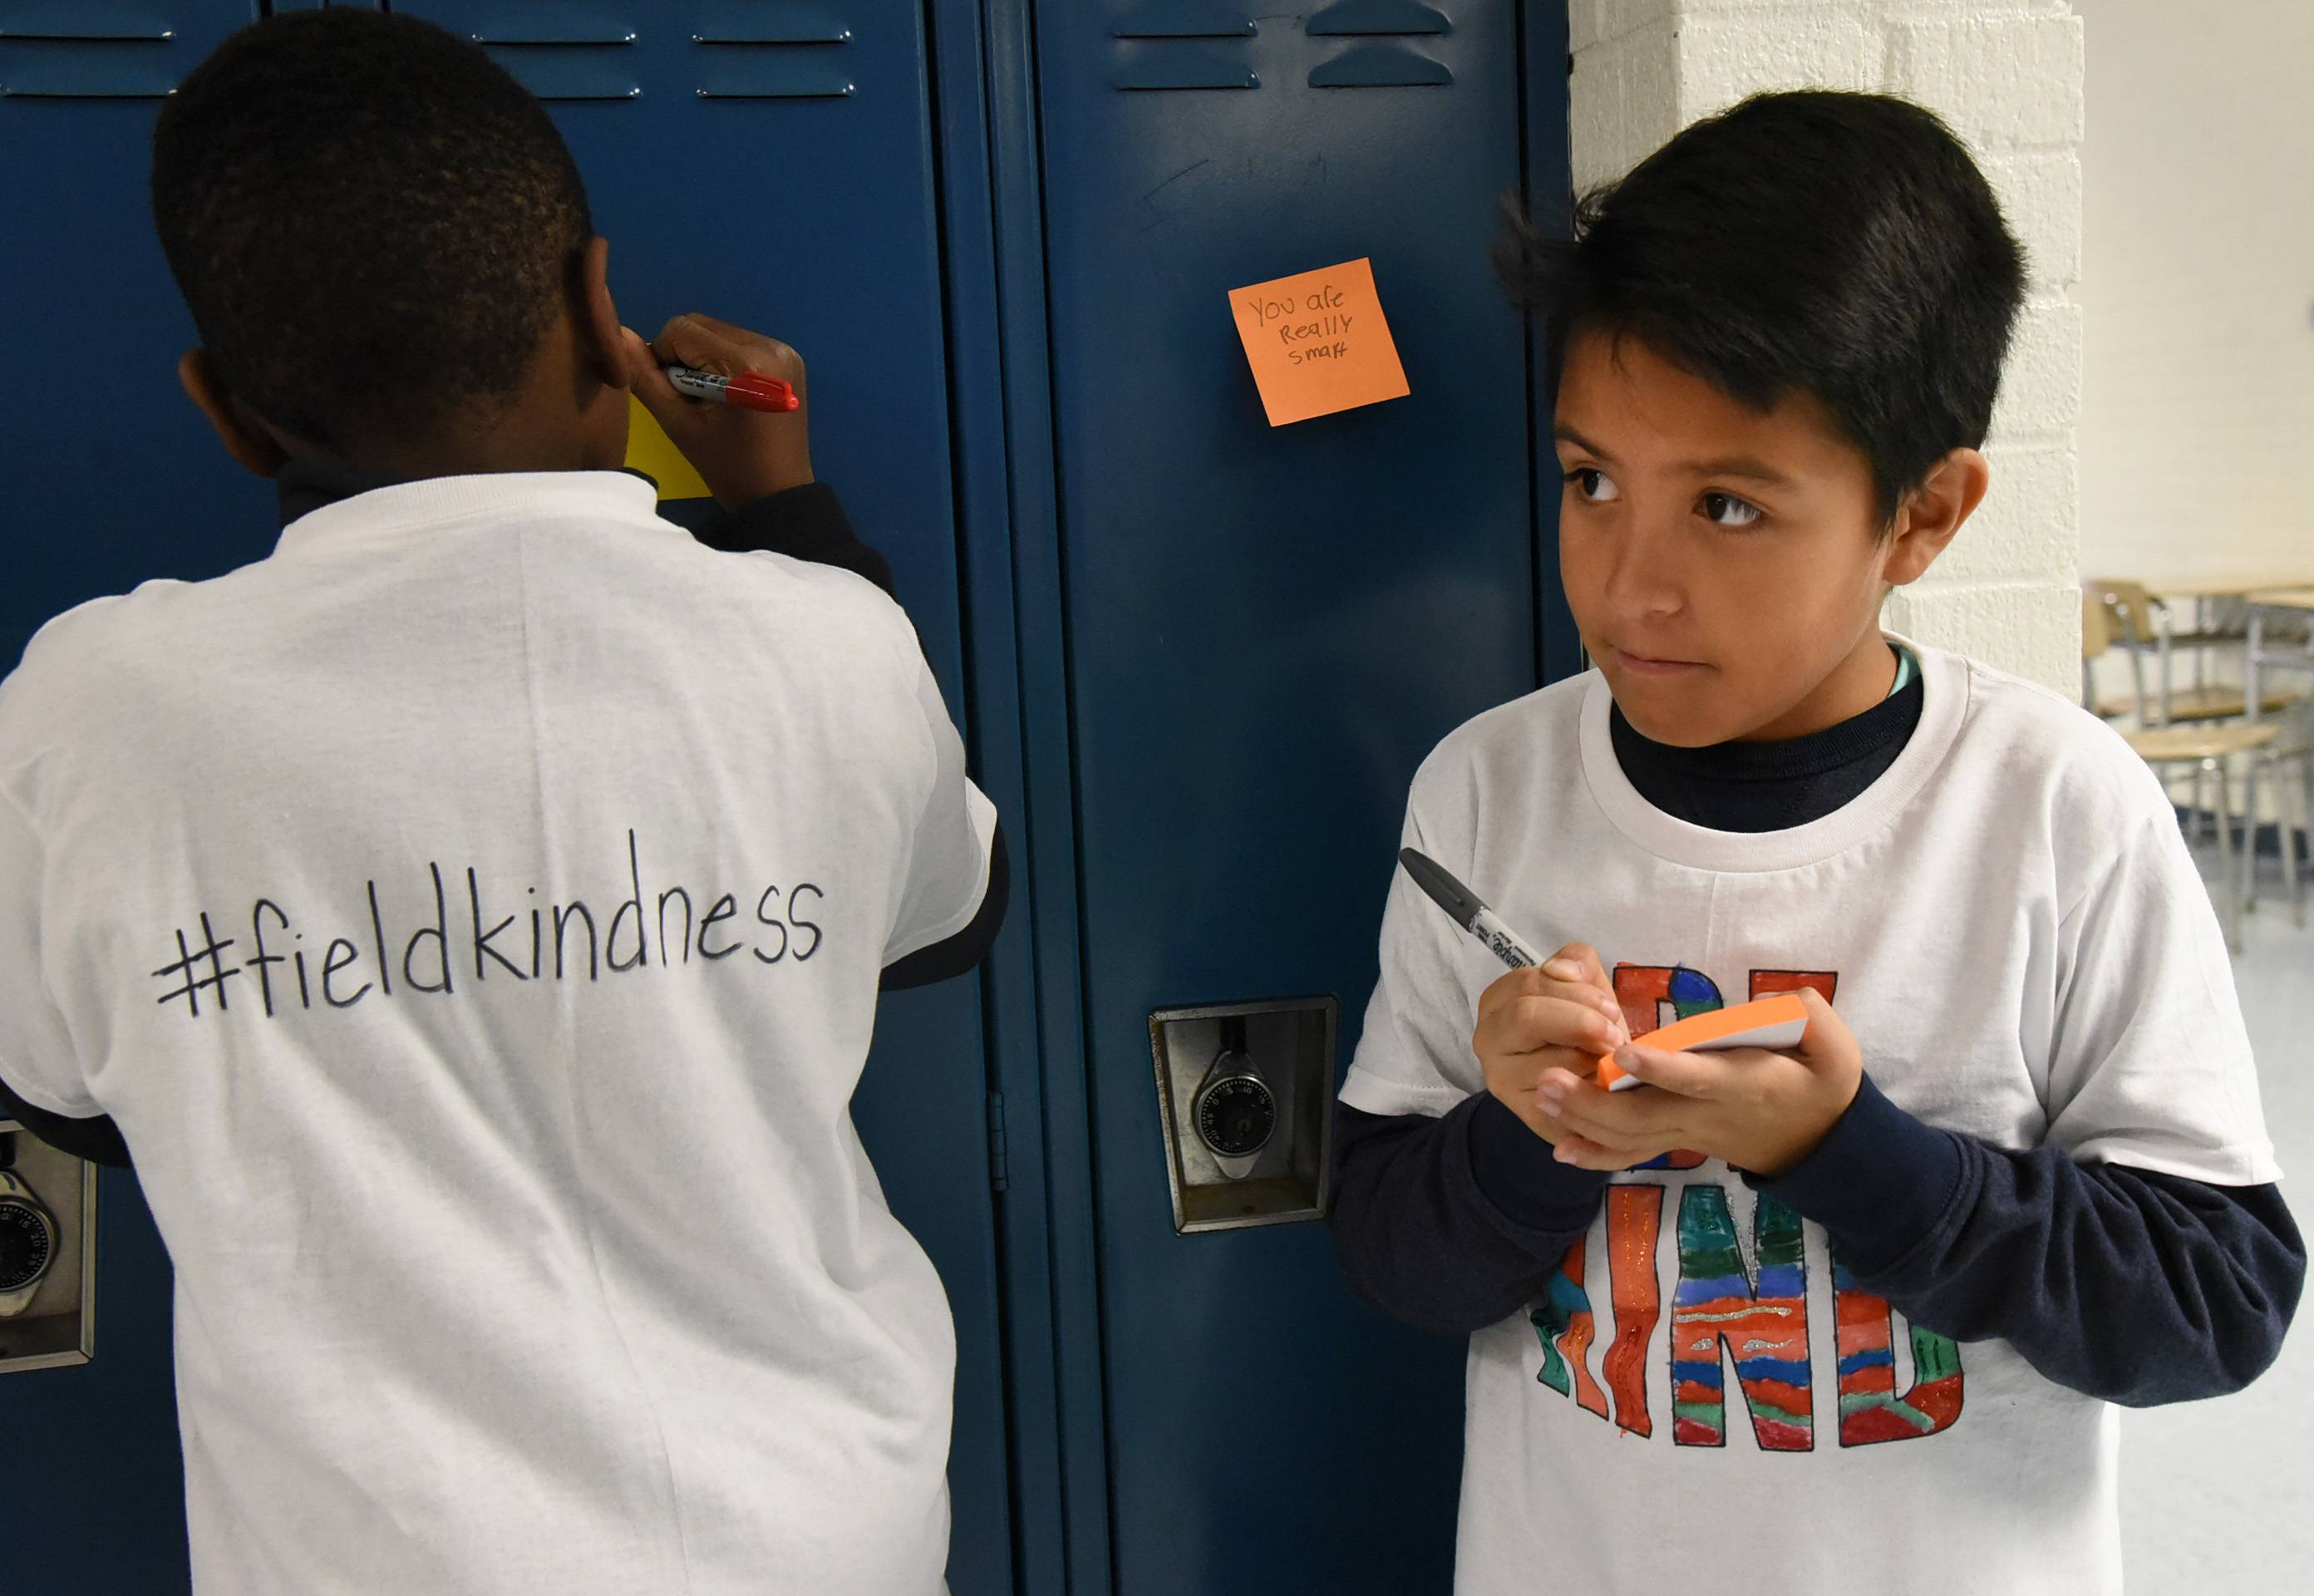 Jesus Altamirano, a fourth-grader at Field Elementary School in Wheeling, writes on a Post-it note to stick on a locker Monday at London Middle School as part of World Kindness Day.